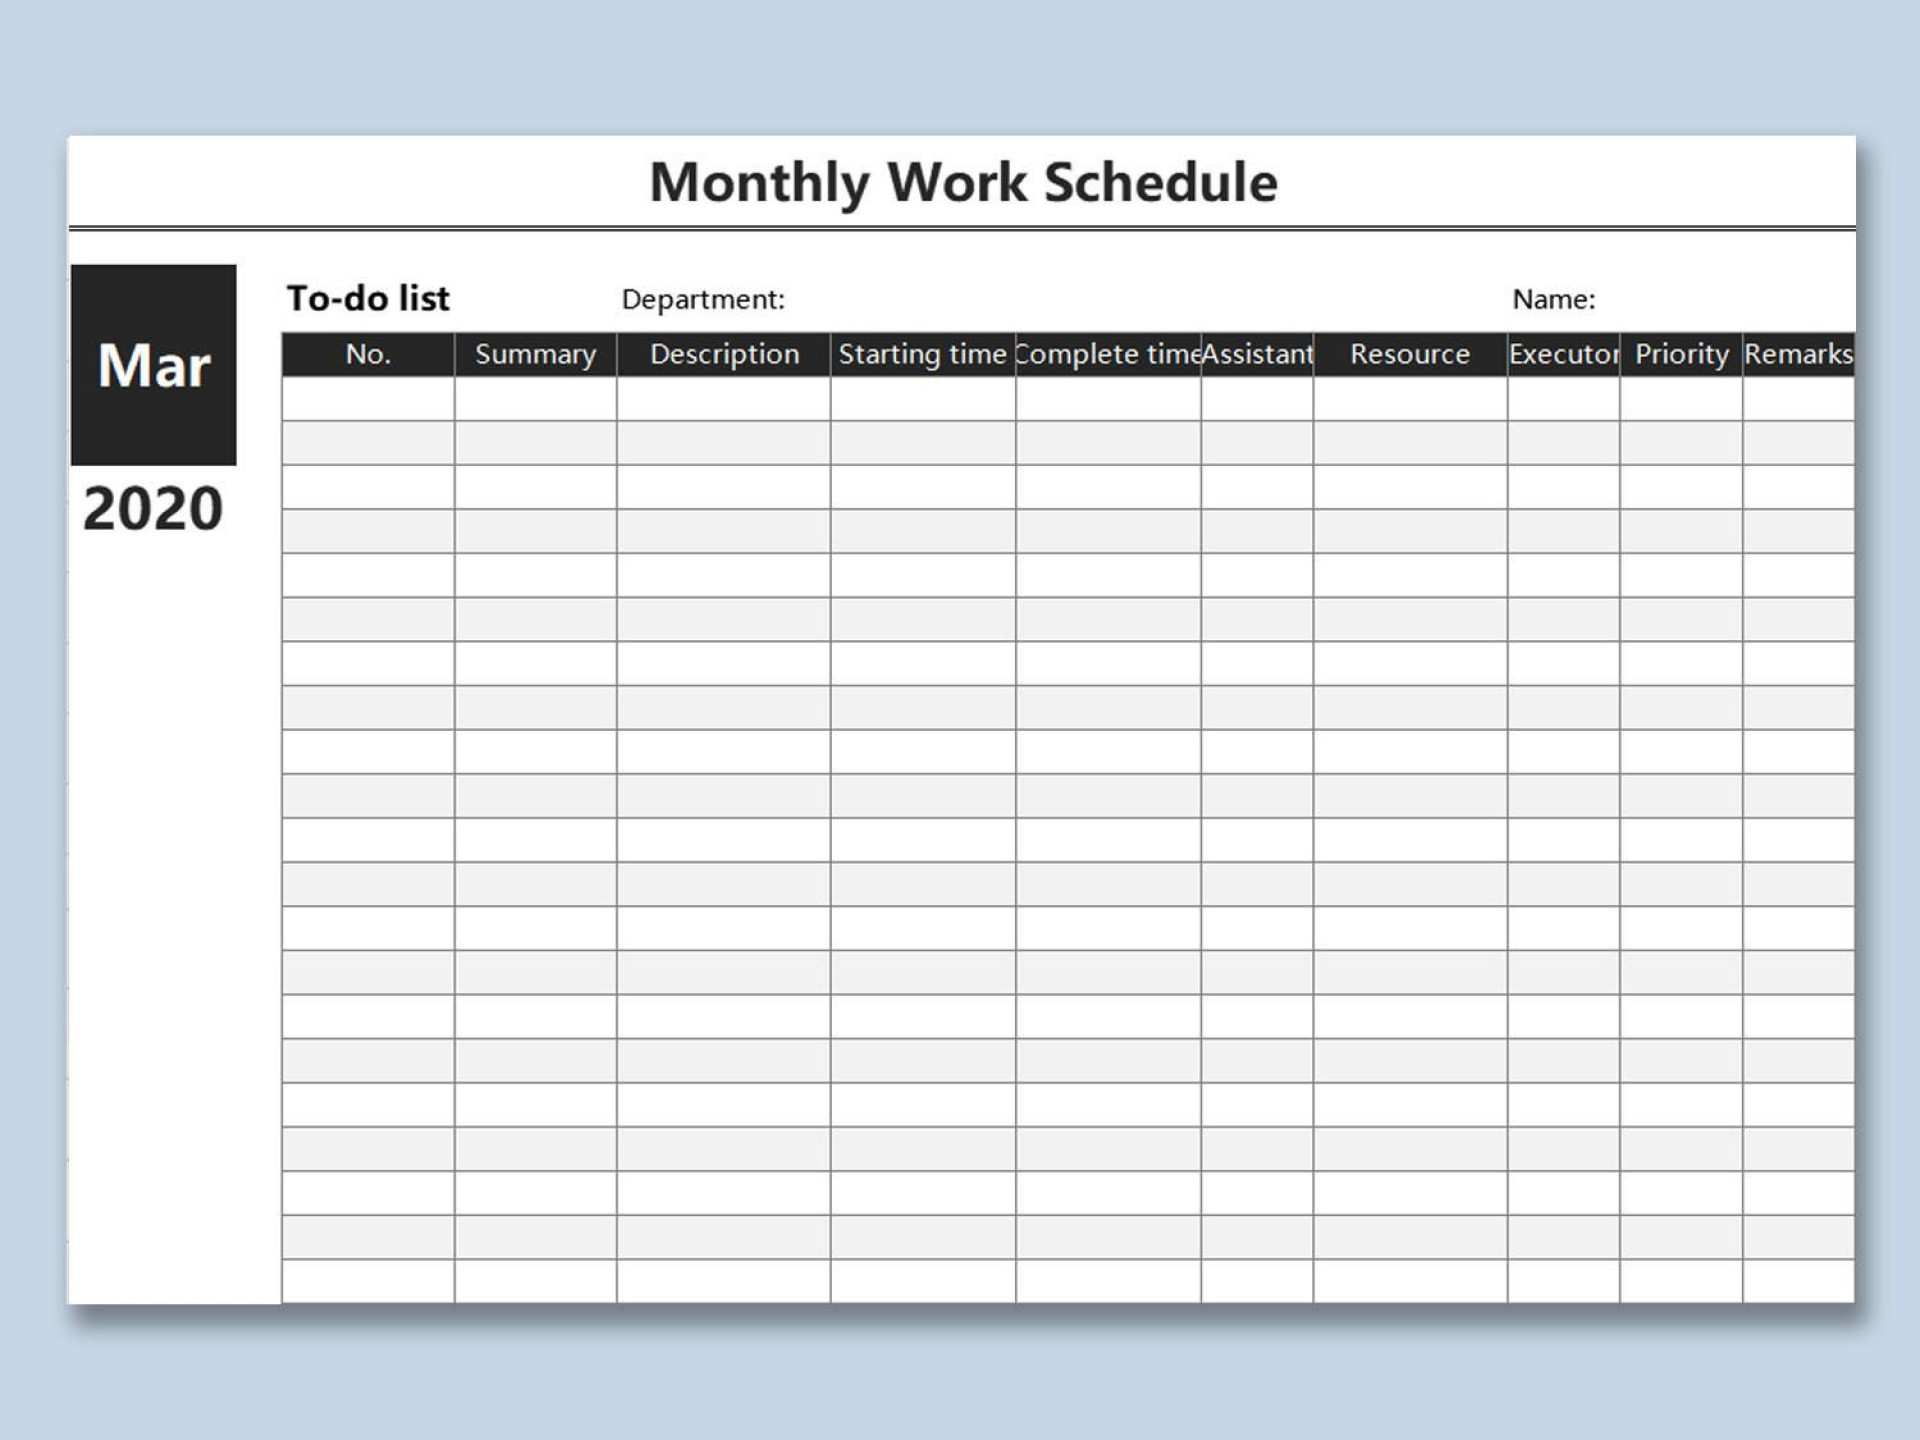 000 Magnificent Weekly Work Schedule Template High Resolution  Pdf Free Excel1920